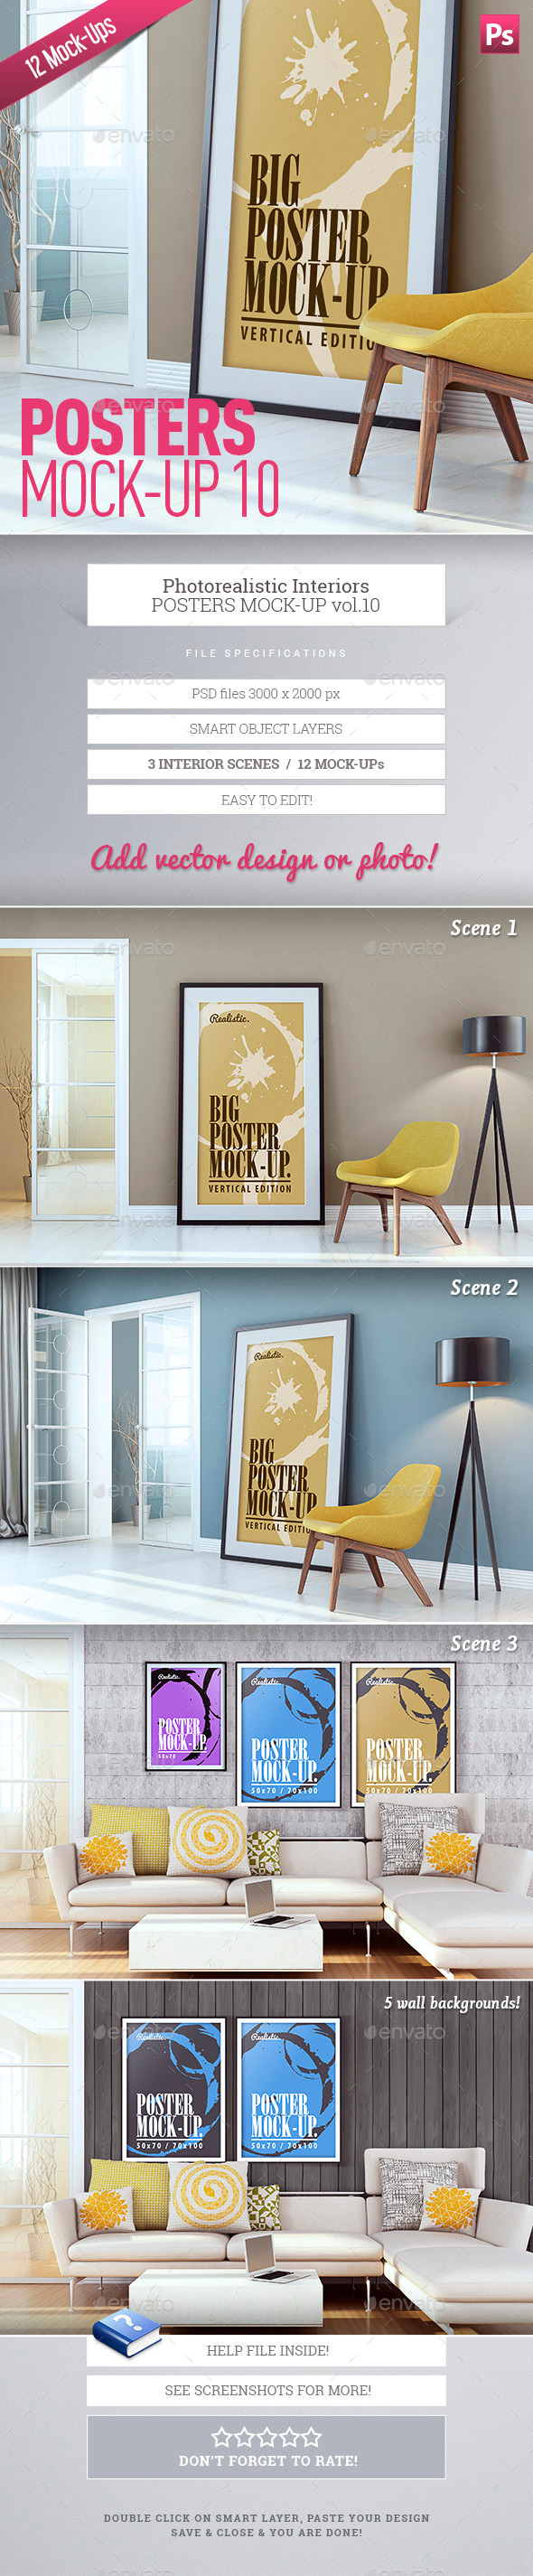 GraphicRiver Posters Mock-Up vol.10 9951680